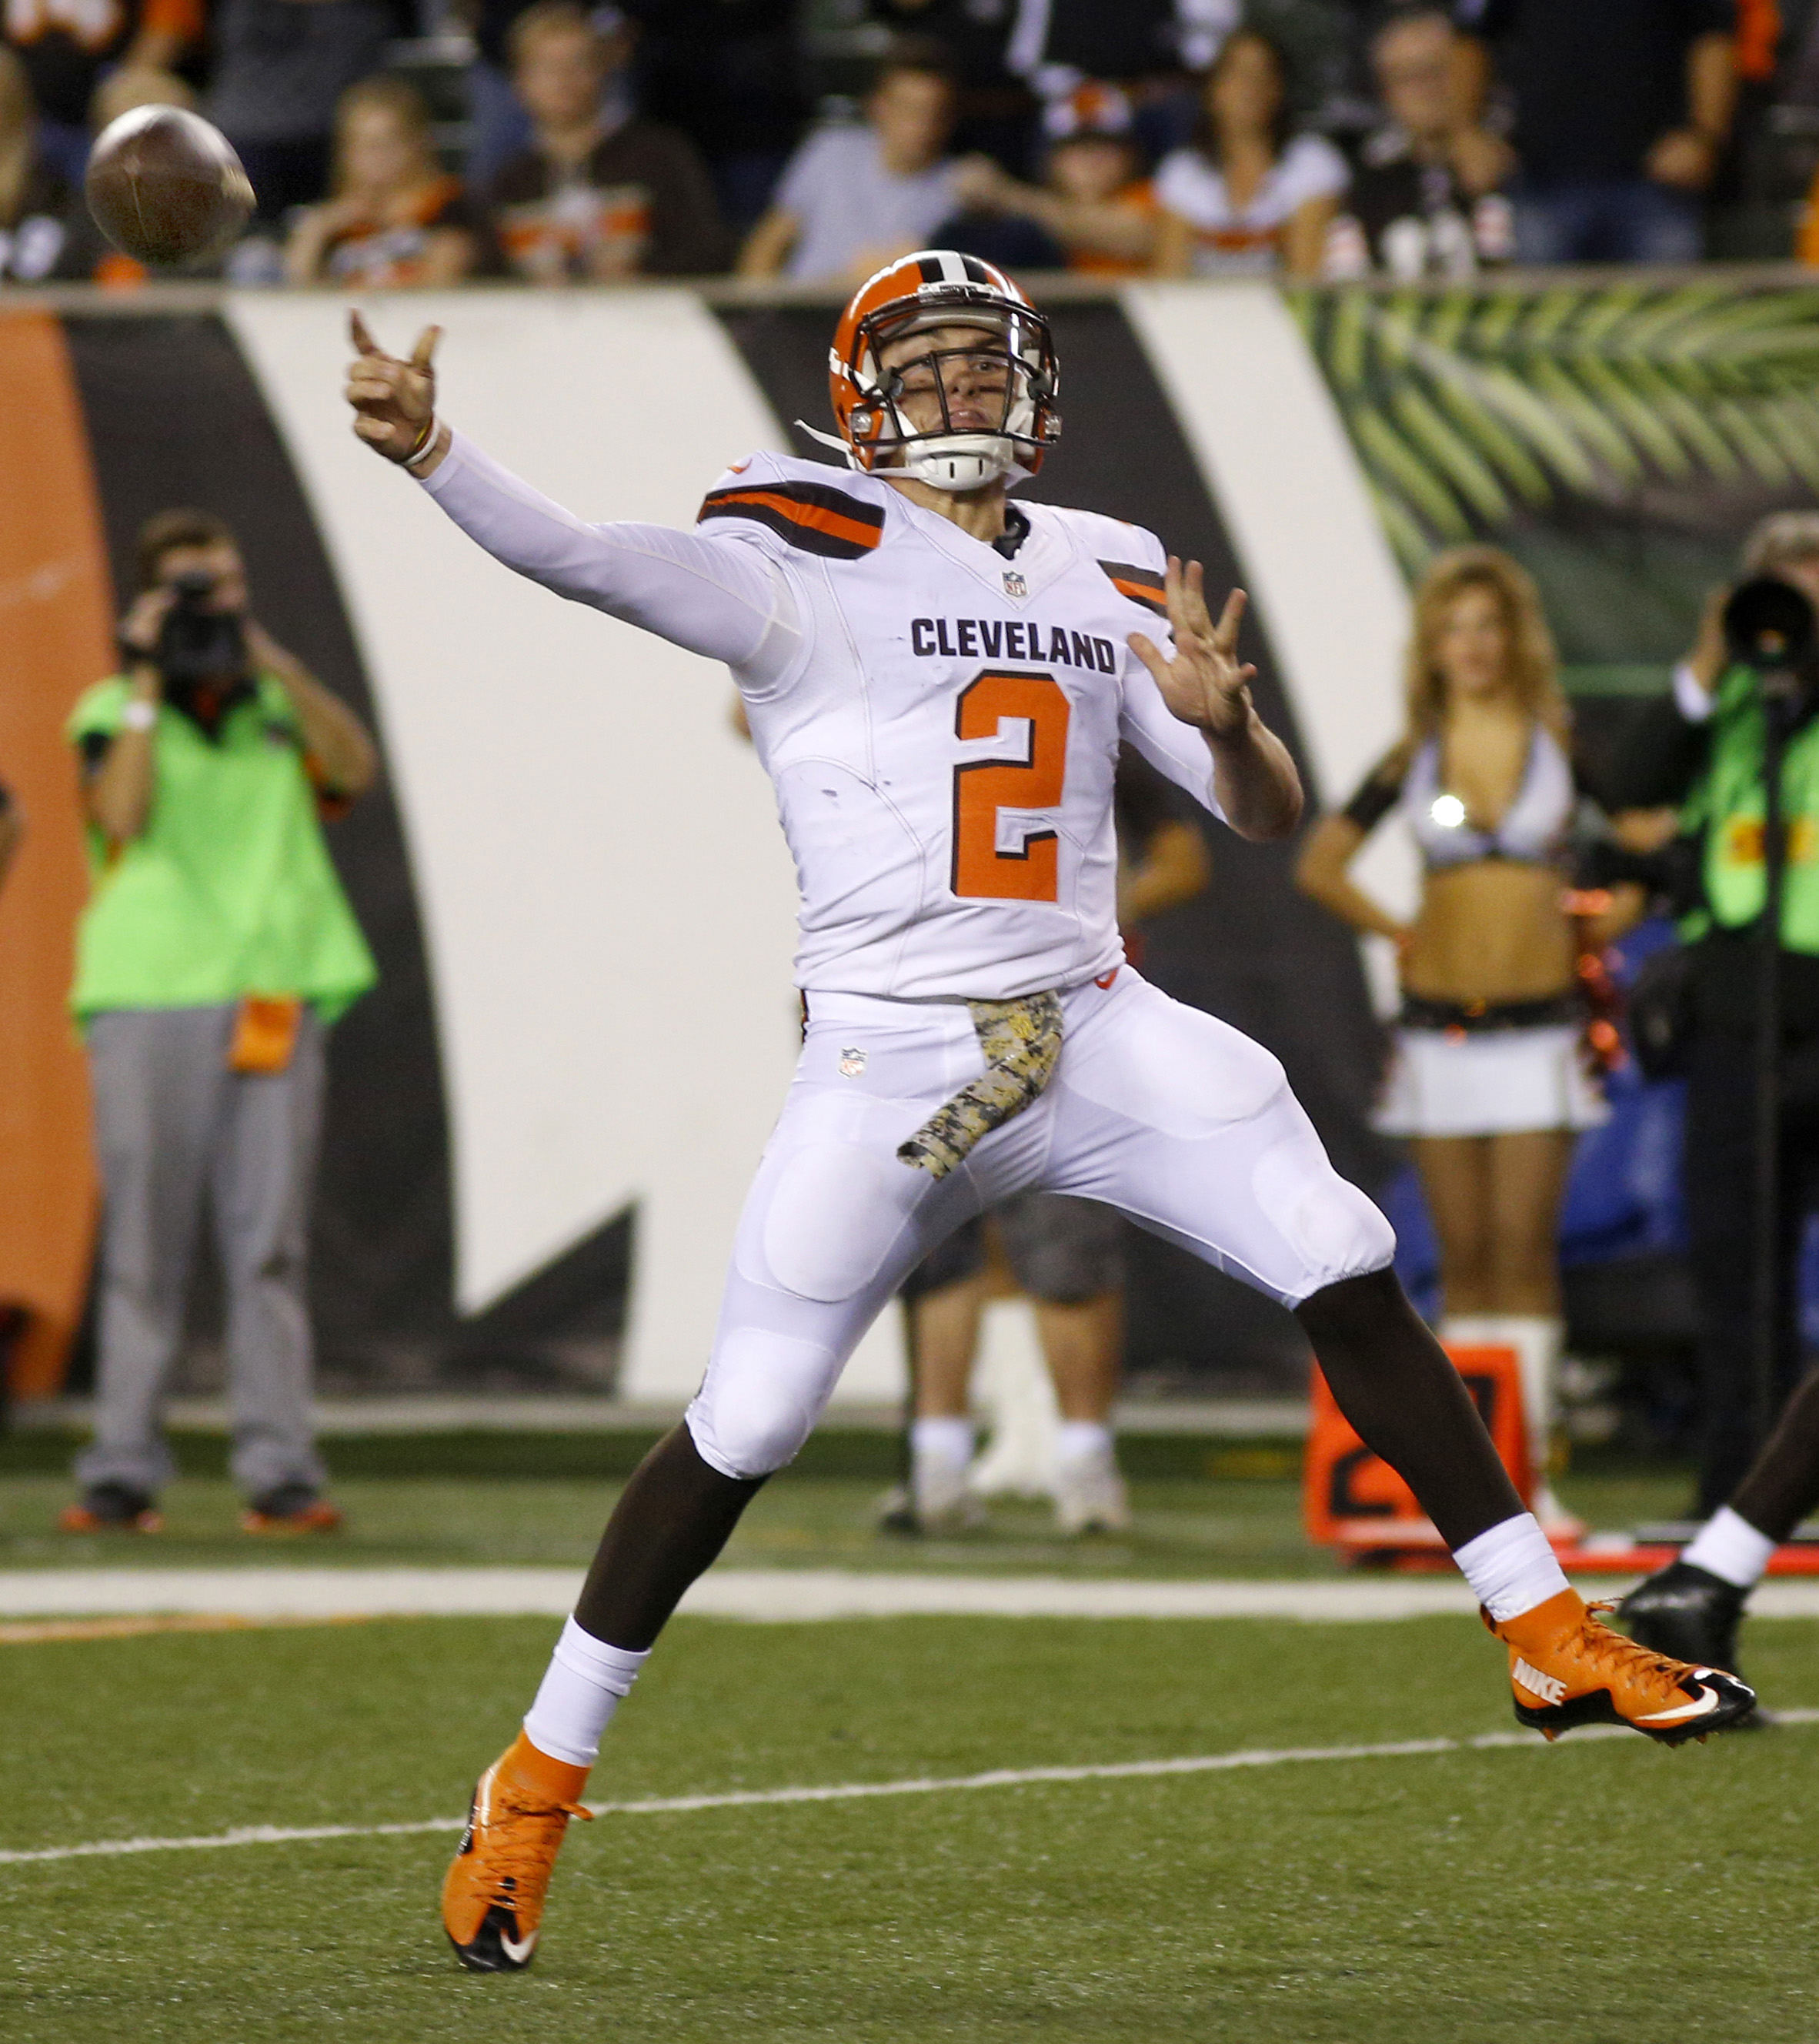 Browns expected to start Johnny Manziel against Steelers